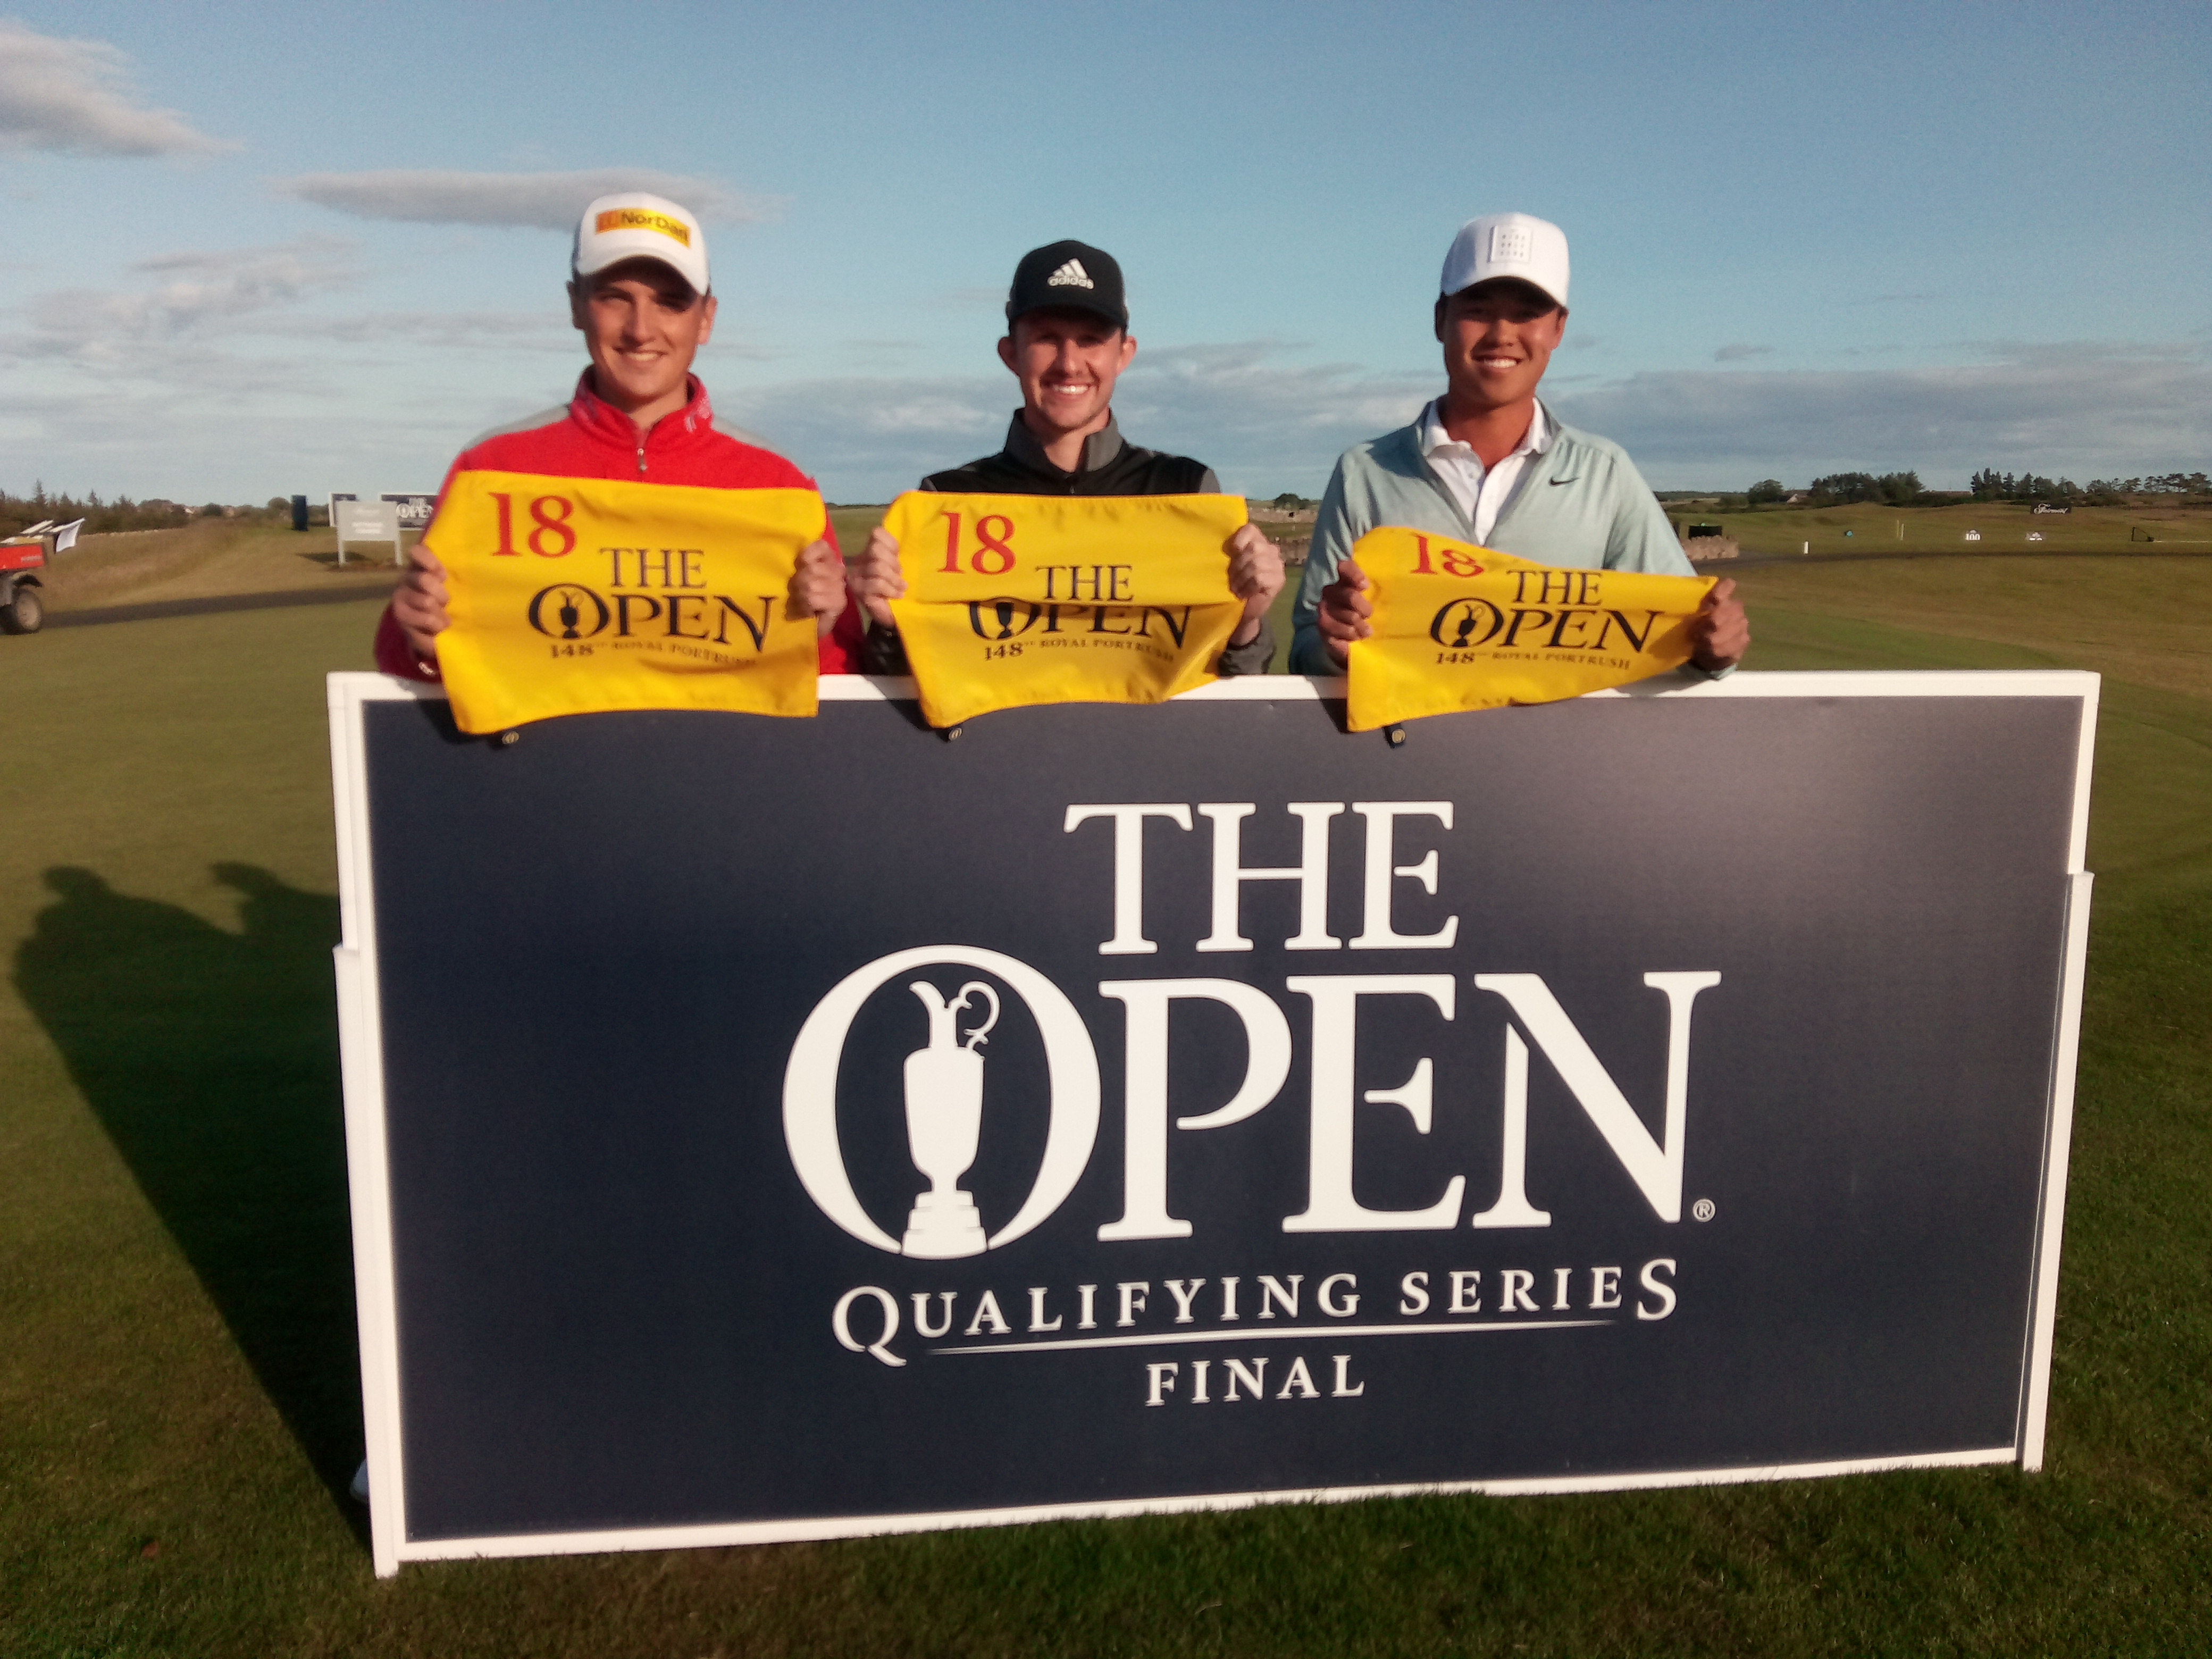 Brandon Wu (right) with fellow qualifiers Sam Locke (right) and Connor Syme (centre).